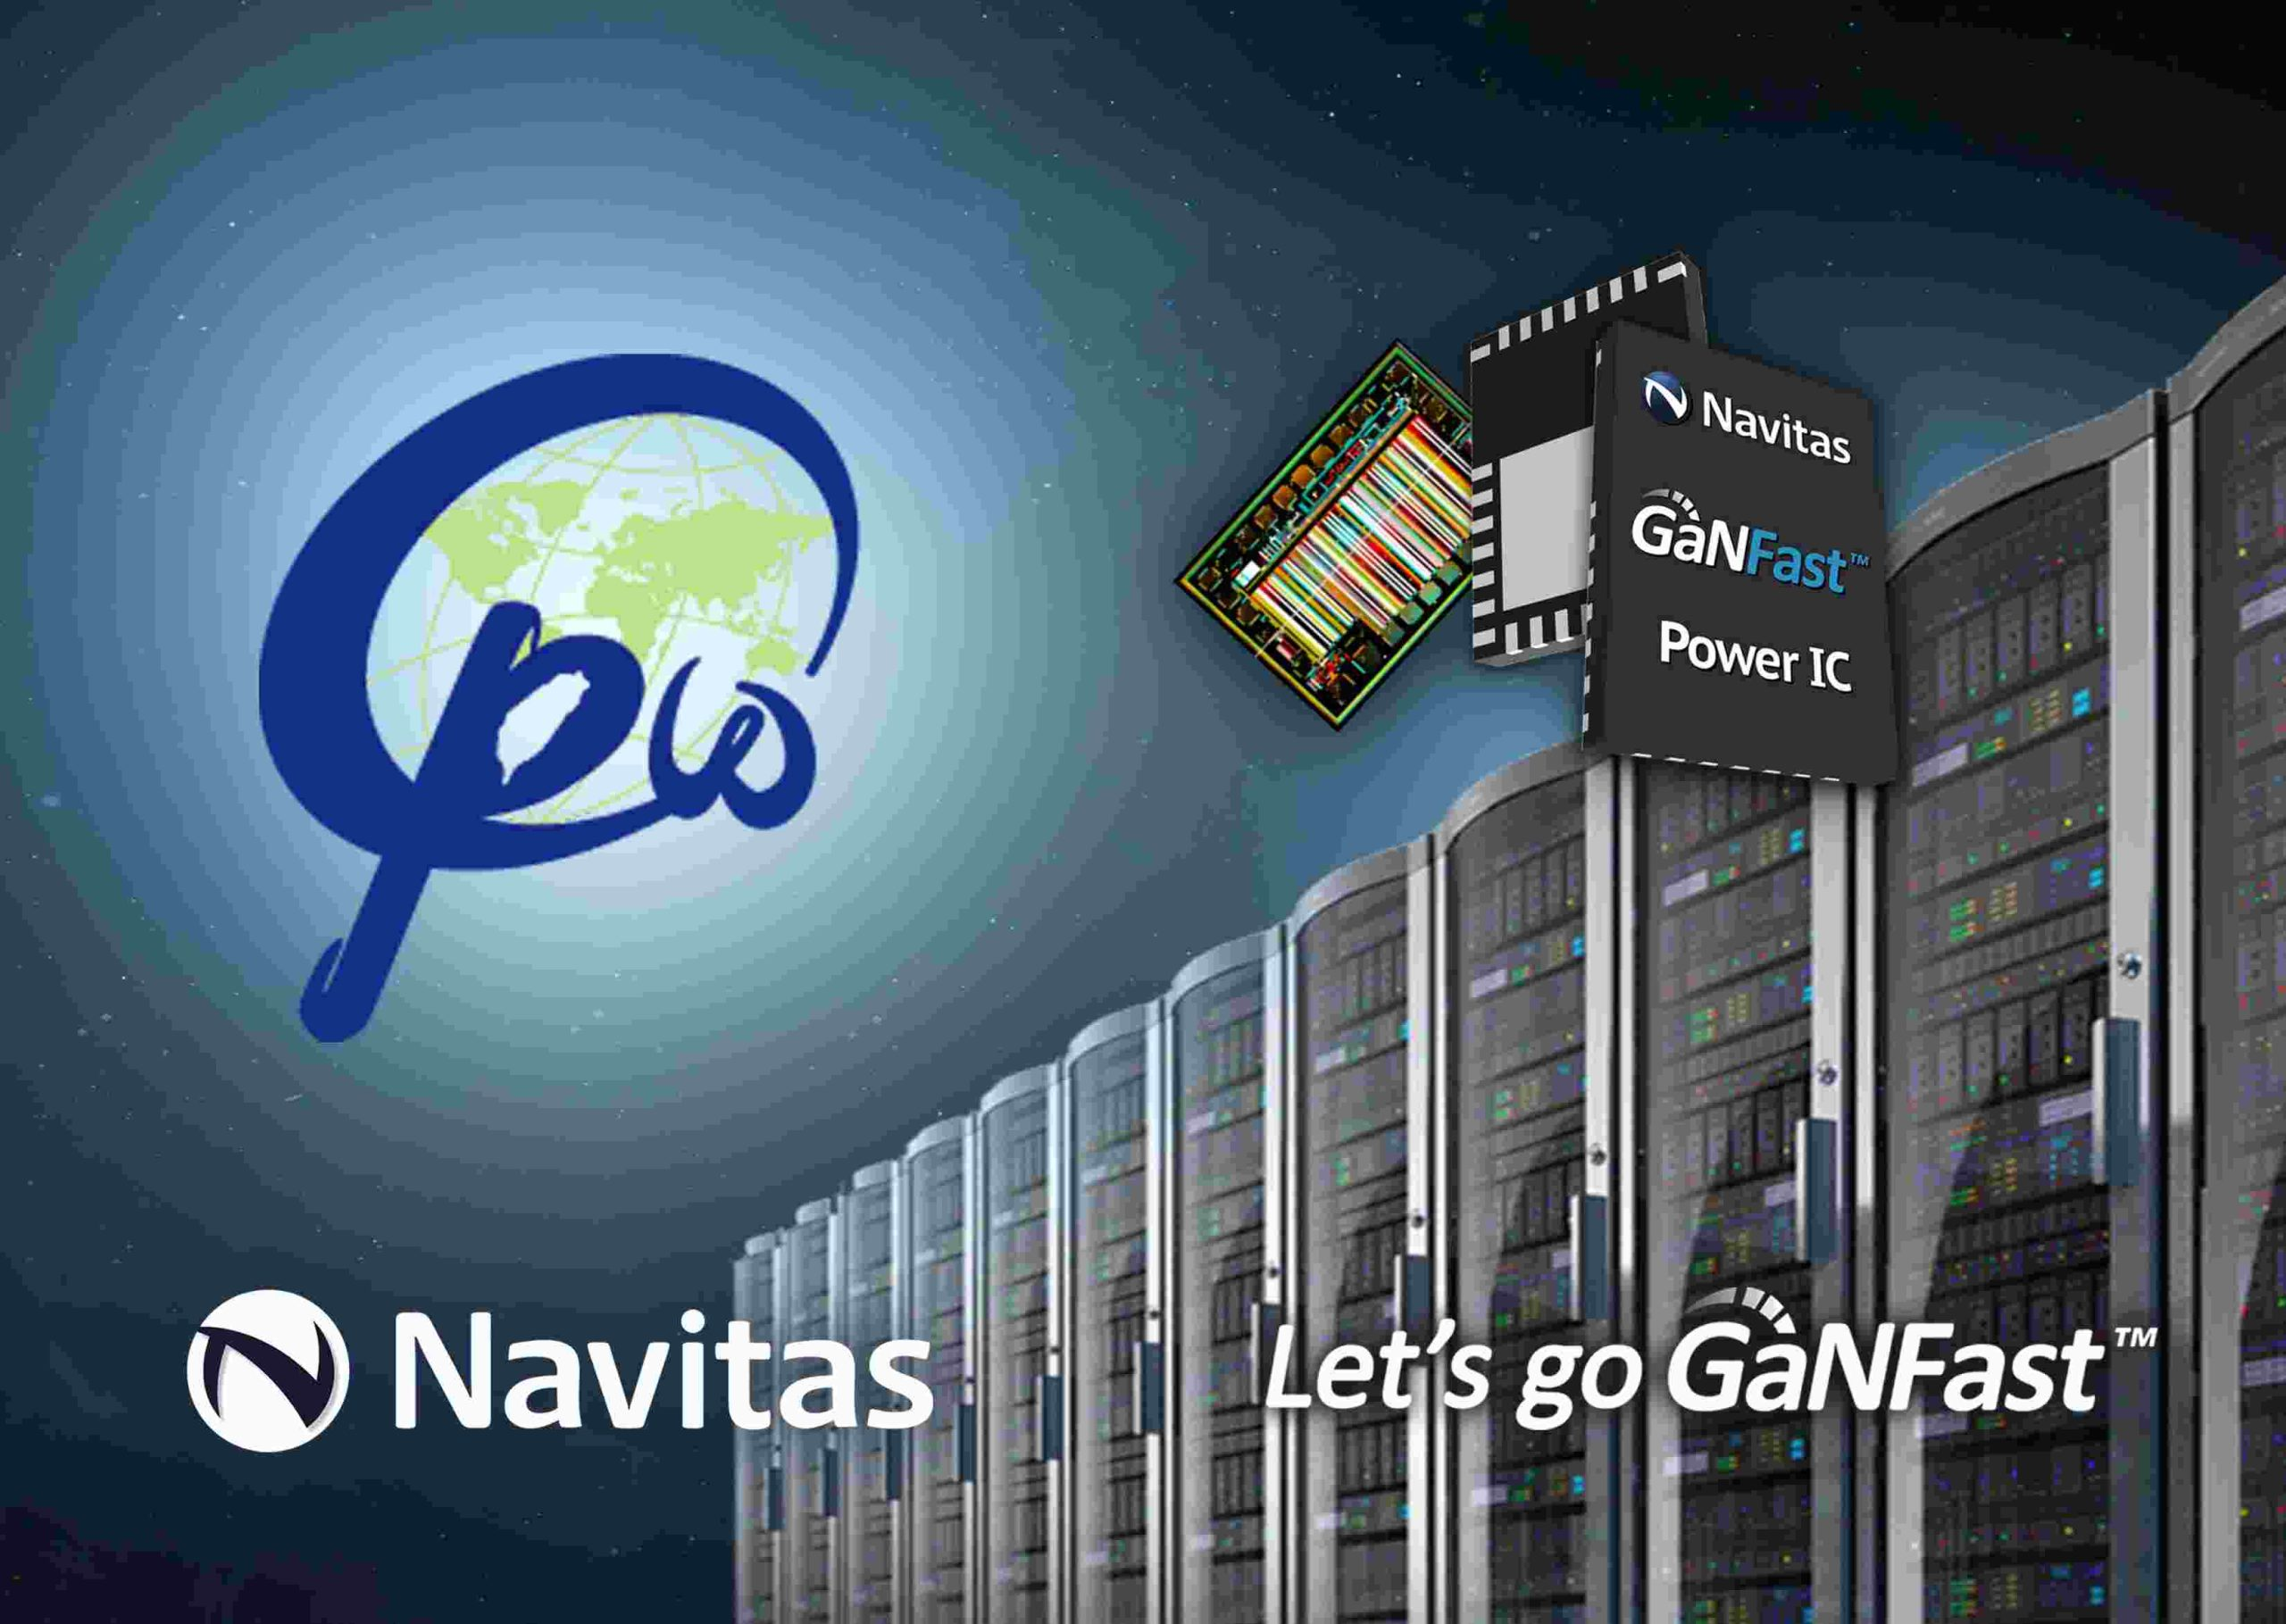 Navitas and Compuware Partner to Redefine Best-in-Class Performance for Next-Generation Data Center Power